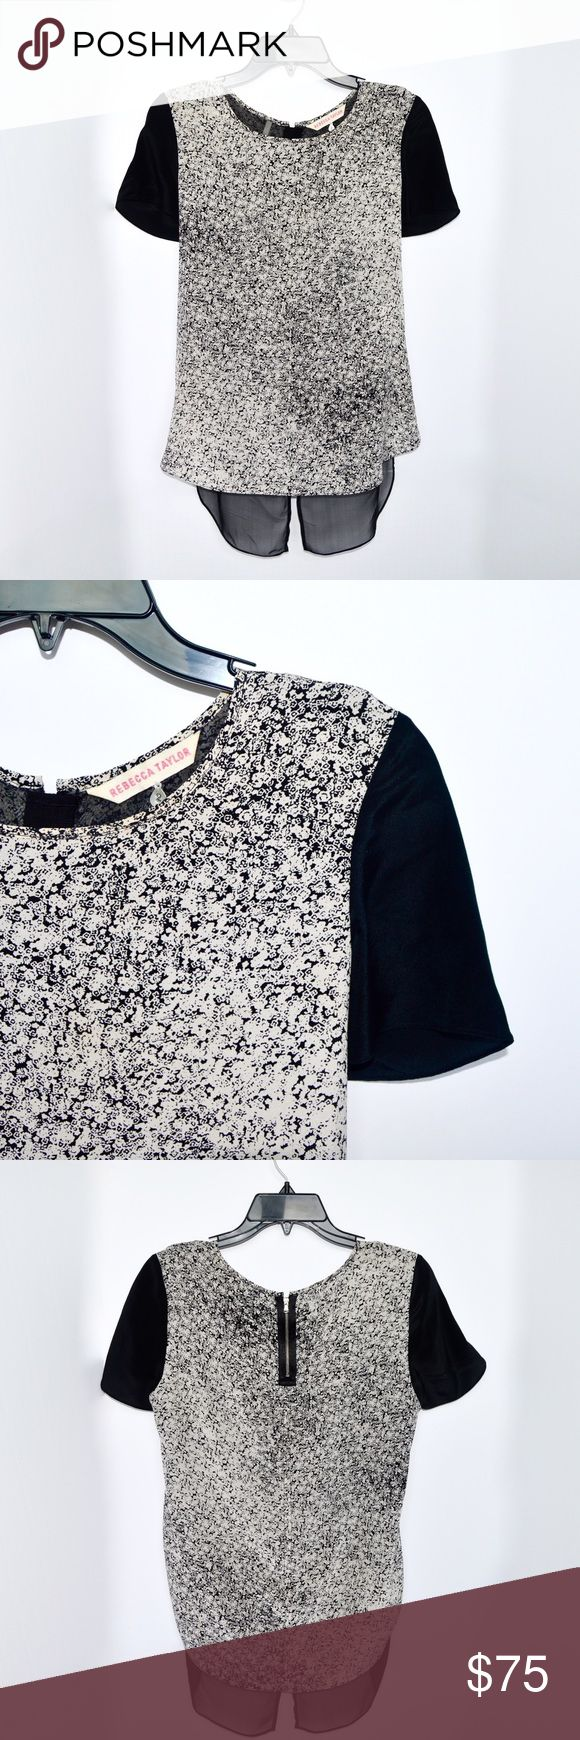 REBECCA TAYLOR SALE OUT Rebecca Taylor speckled top with a sheer underlay in perfect condition!  🚫NO TRADES  💵Will accept reasonable offers! 🤗 comment any questions you may have! Rebecca Taylor Tops Blouses